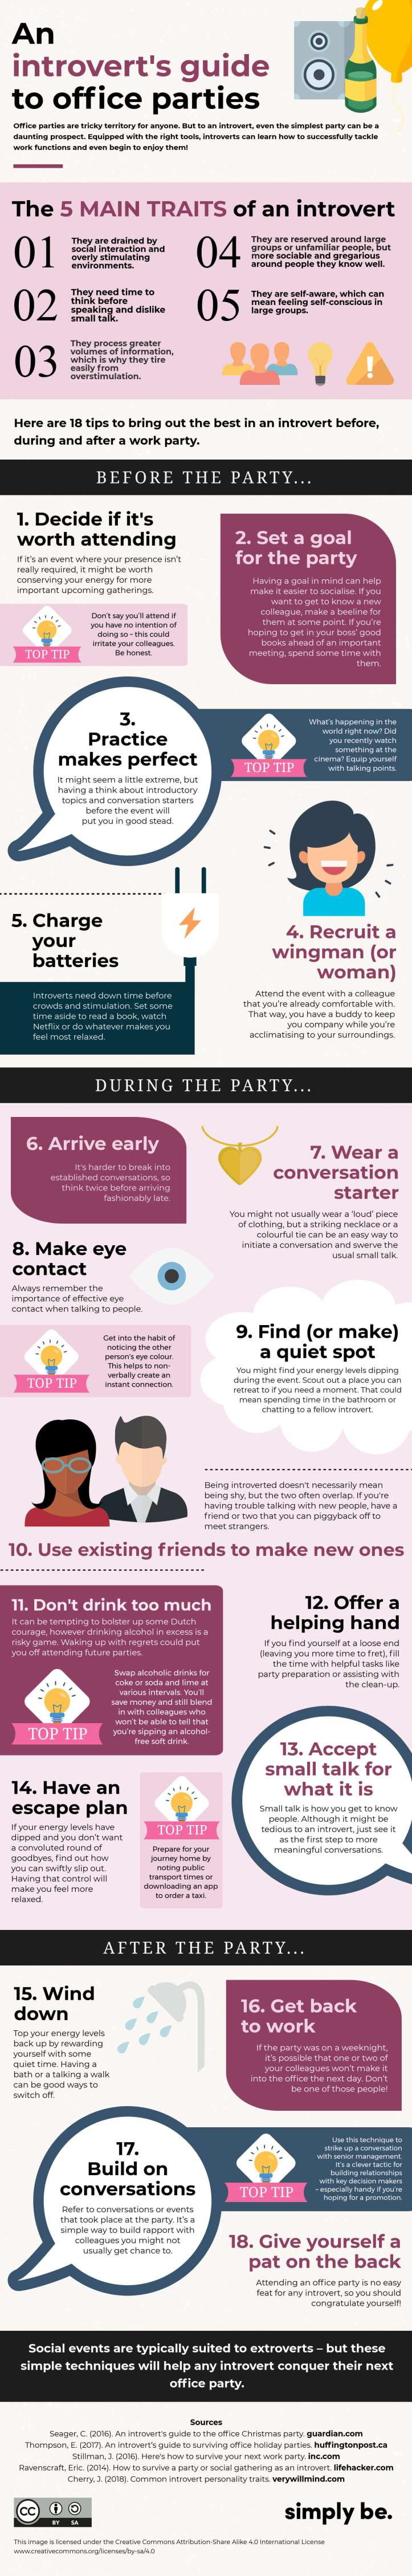 An Introvert's Guide to the Office Party #infographic